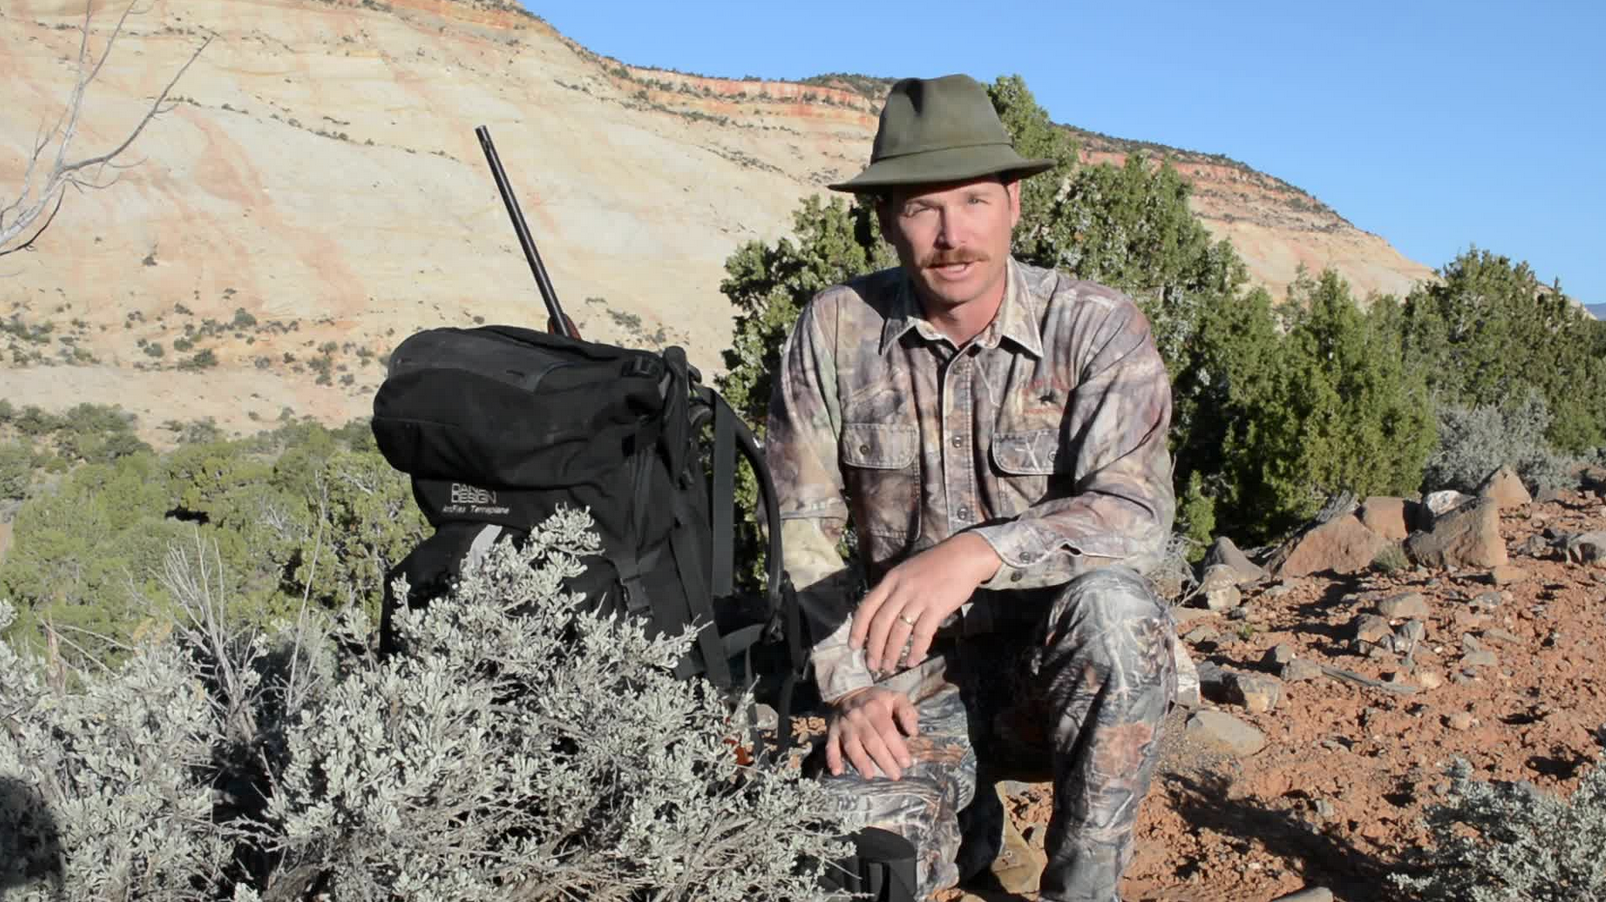 Hunting Gear: Why You Should Wear a Fedora Instead of a Baseball Cap